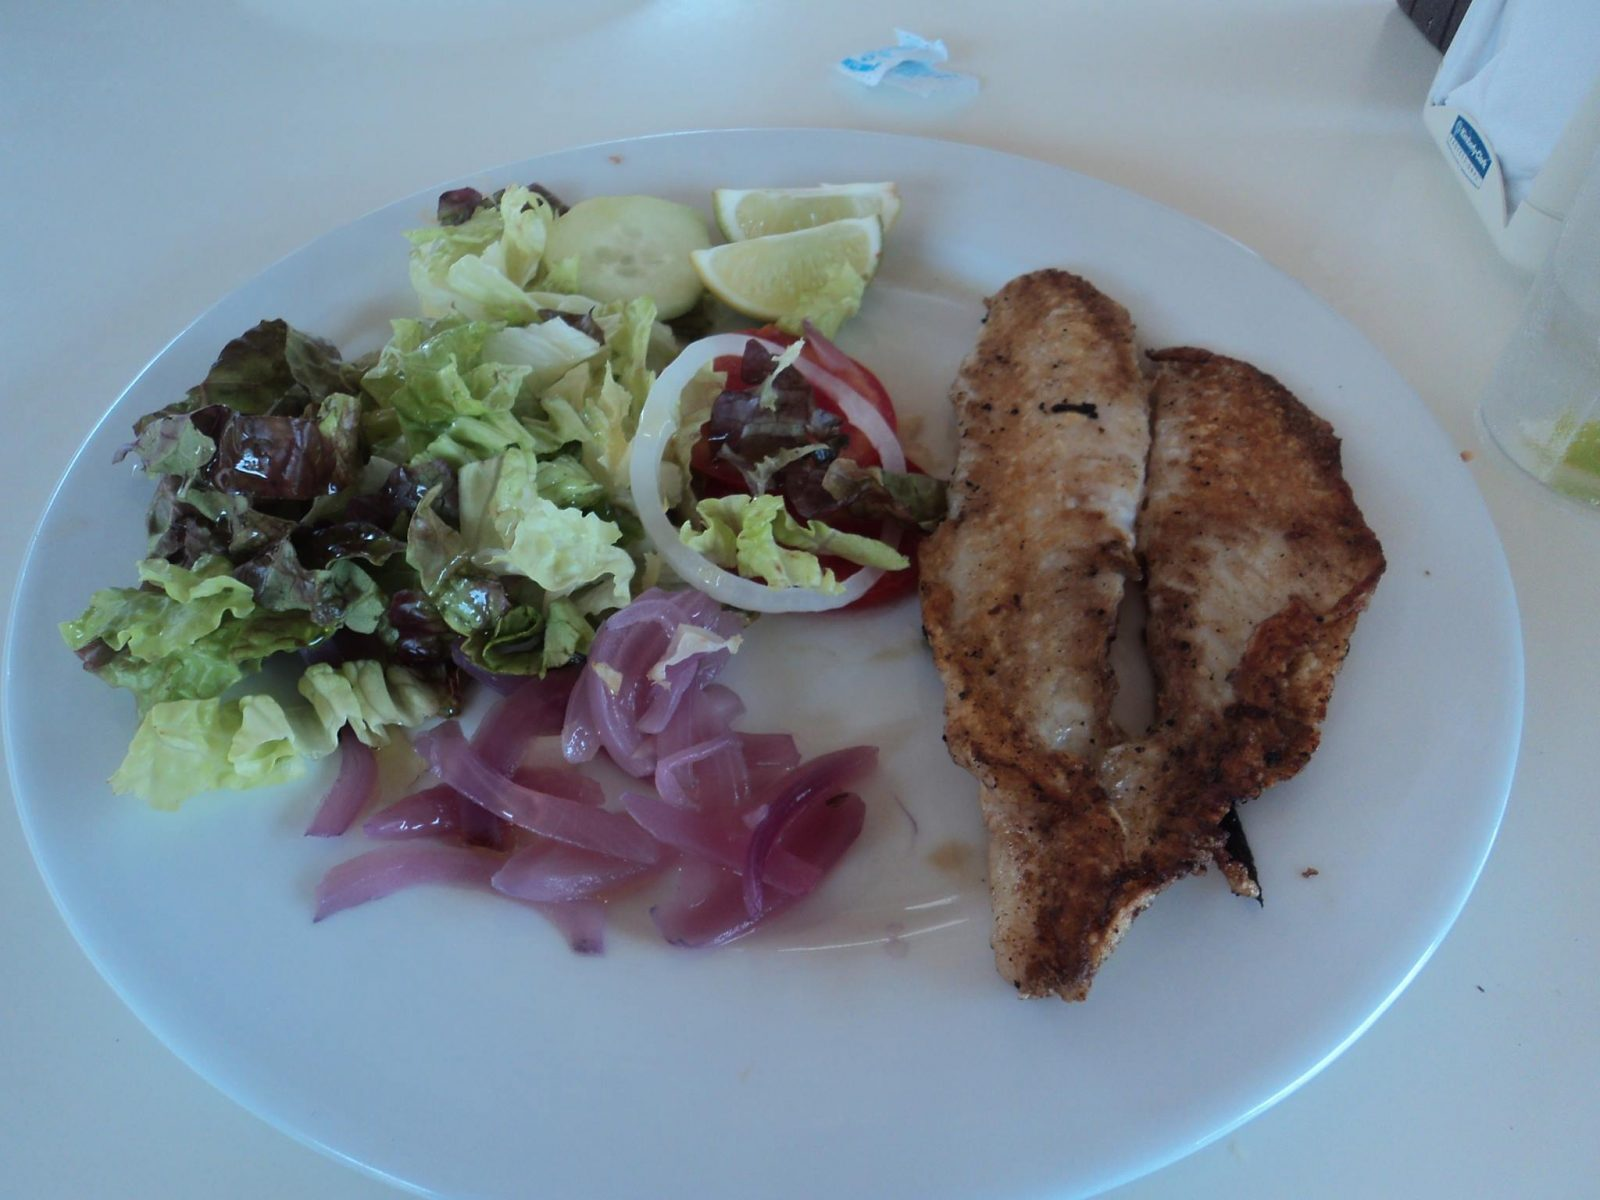 Grilled fish at Punta Emila beach bar at lunch